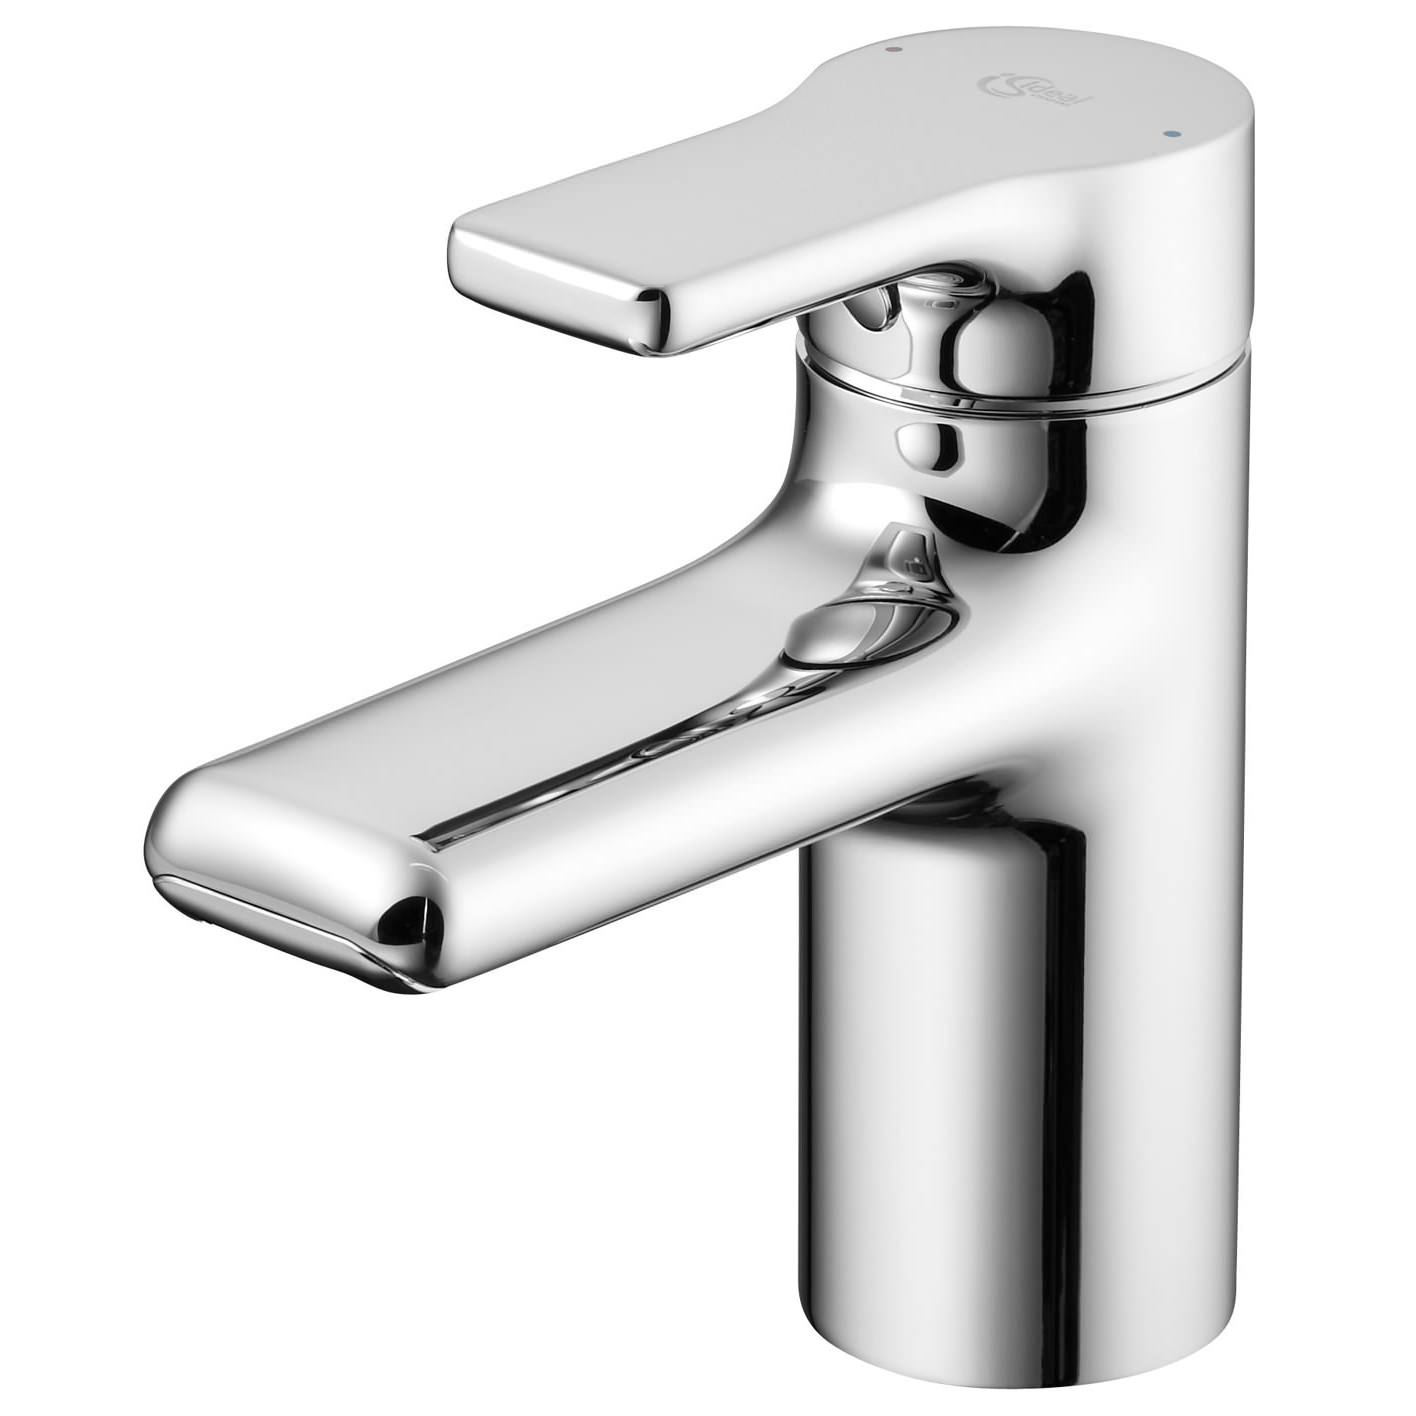 ideal standard attitude waterfall outlet basin mixer tap. Black Bedroom Furniture Sets. Home Design Ideas